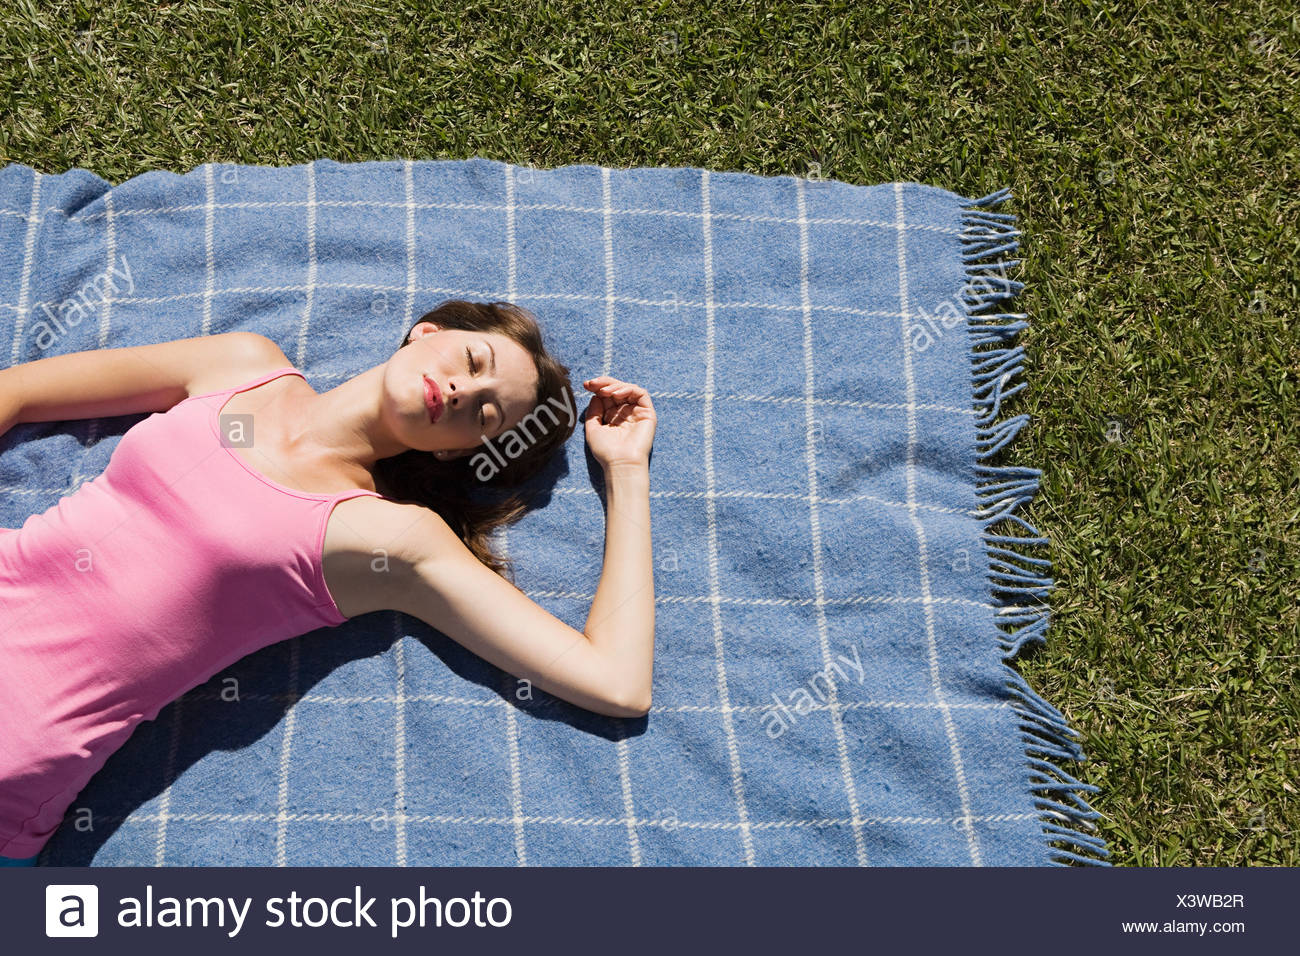 Woman lying on picnic blanket with eyes closed - Stock Image